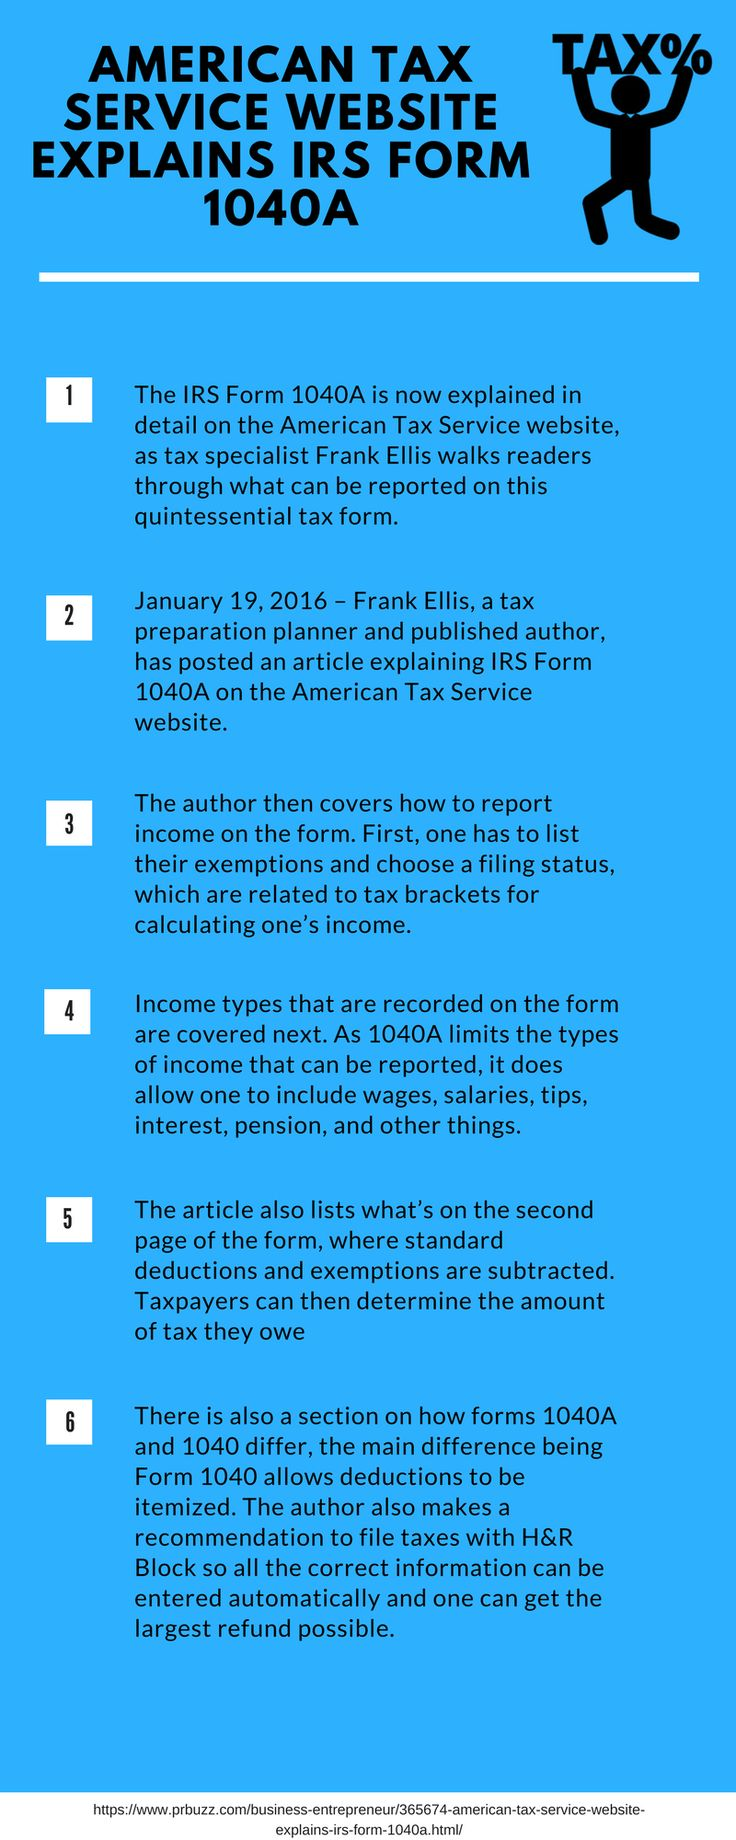 Best 25 irs forms ideas on pinterest tax exempt form irs form httpsprbuzzbusiness entrepreneur365674 american tax service website explains irs form 1040aml the irs form 1040a is now explained in detail falaconquin